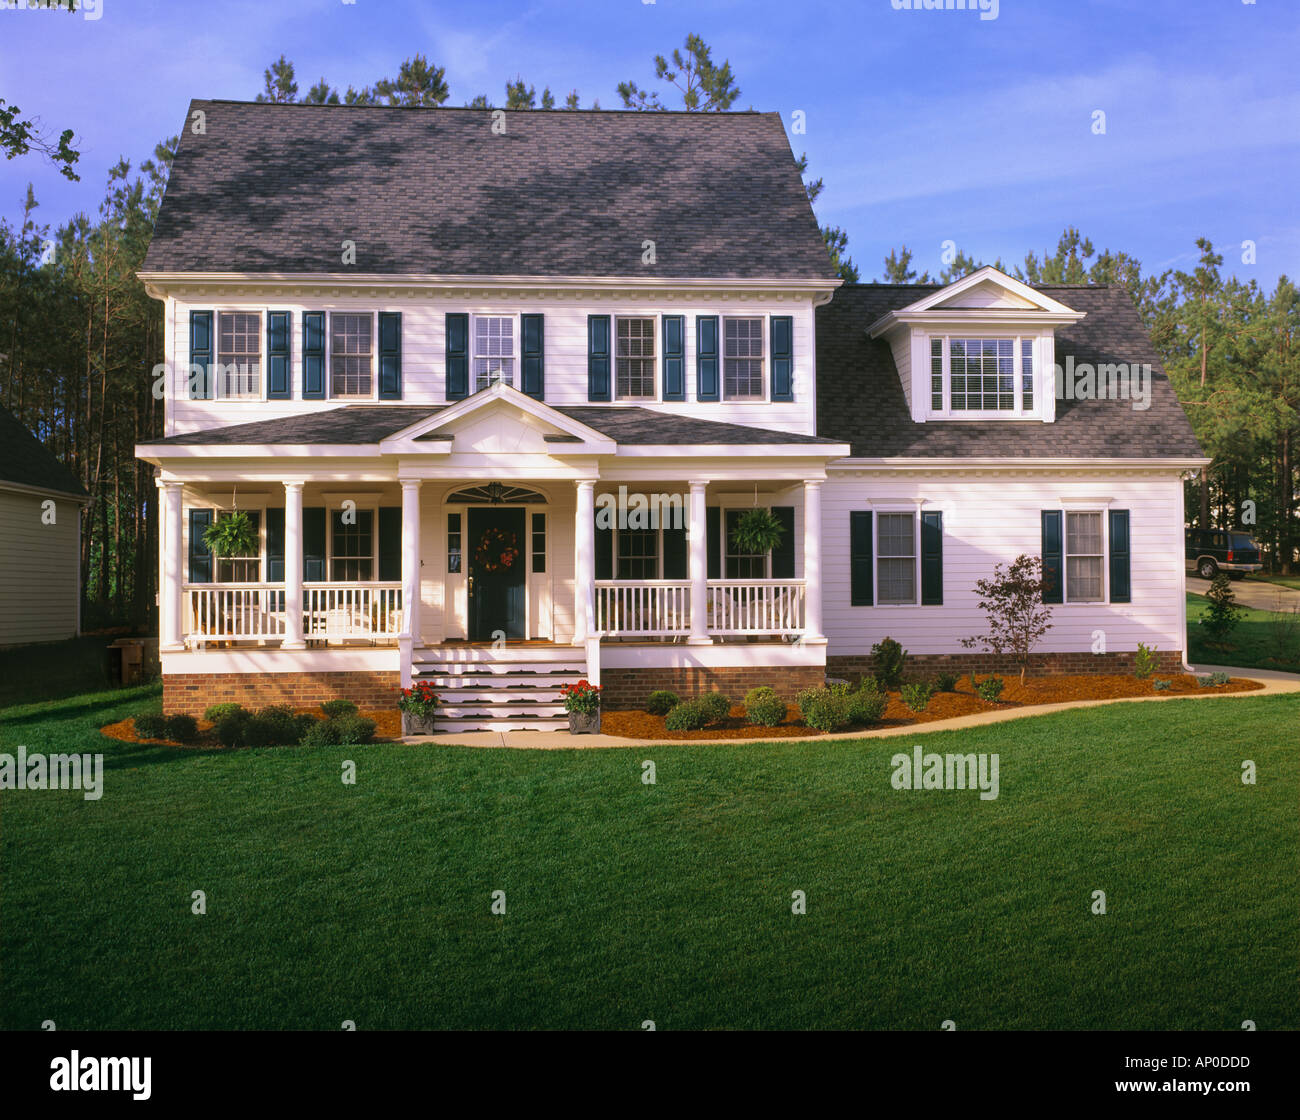 Front Porch Of Yellow House Stock Photo: Large White Two Story House With Blue Shutters A Front